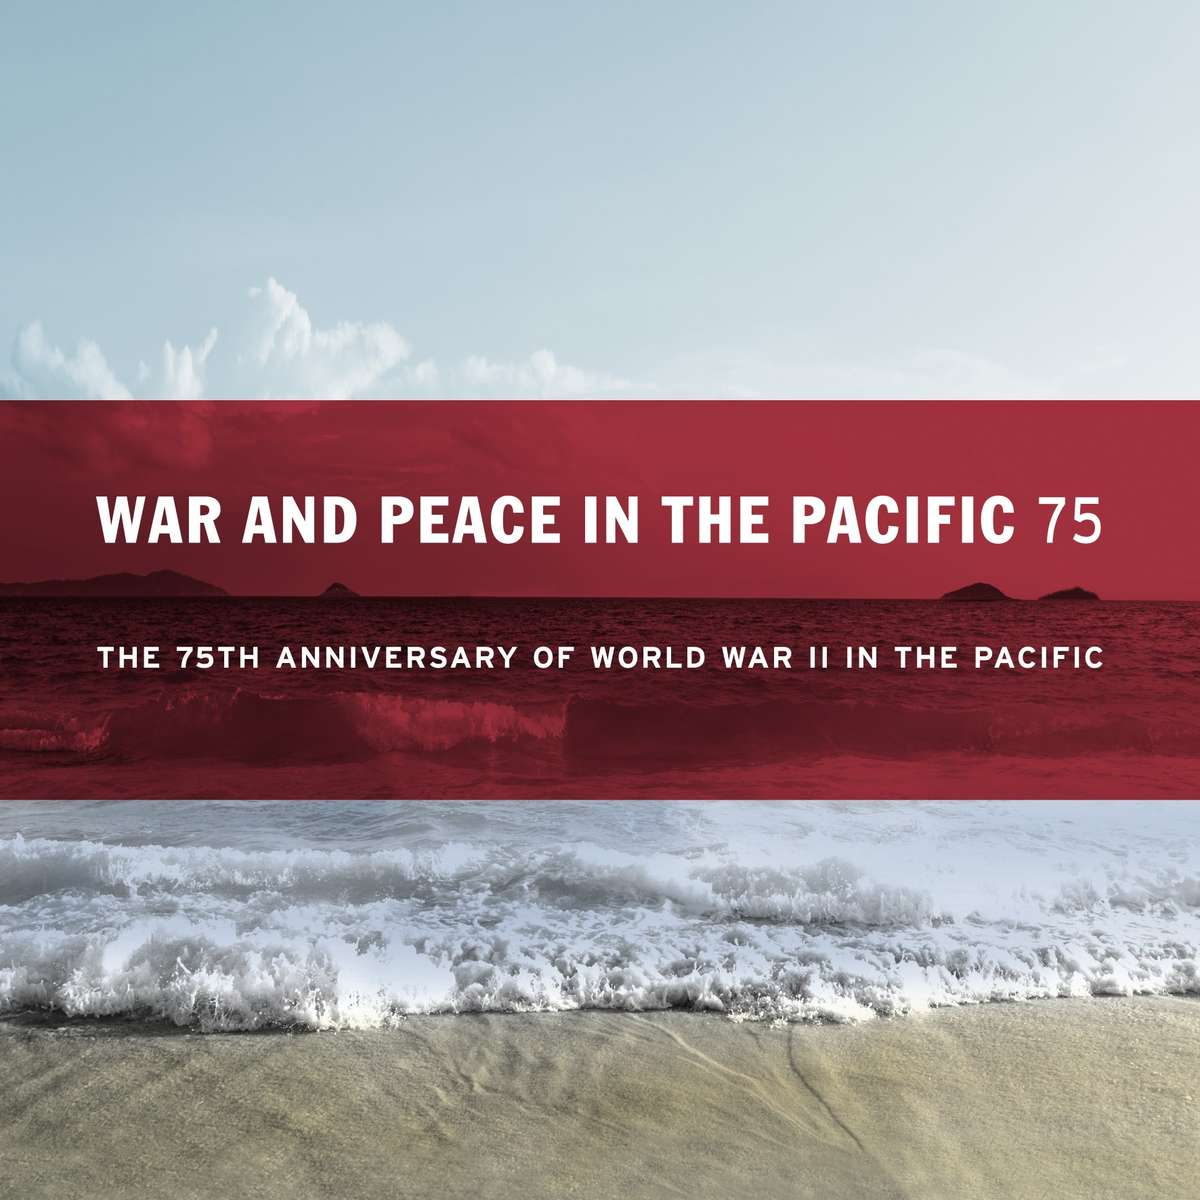 War and Peace in the Pacific 75 – part of the museum's USA programs that commemorate significant 75th anniversaries of World War II, supported by the USA Bicentennial Gift Fund. Image: ANMM.